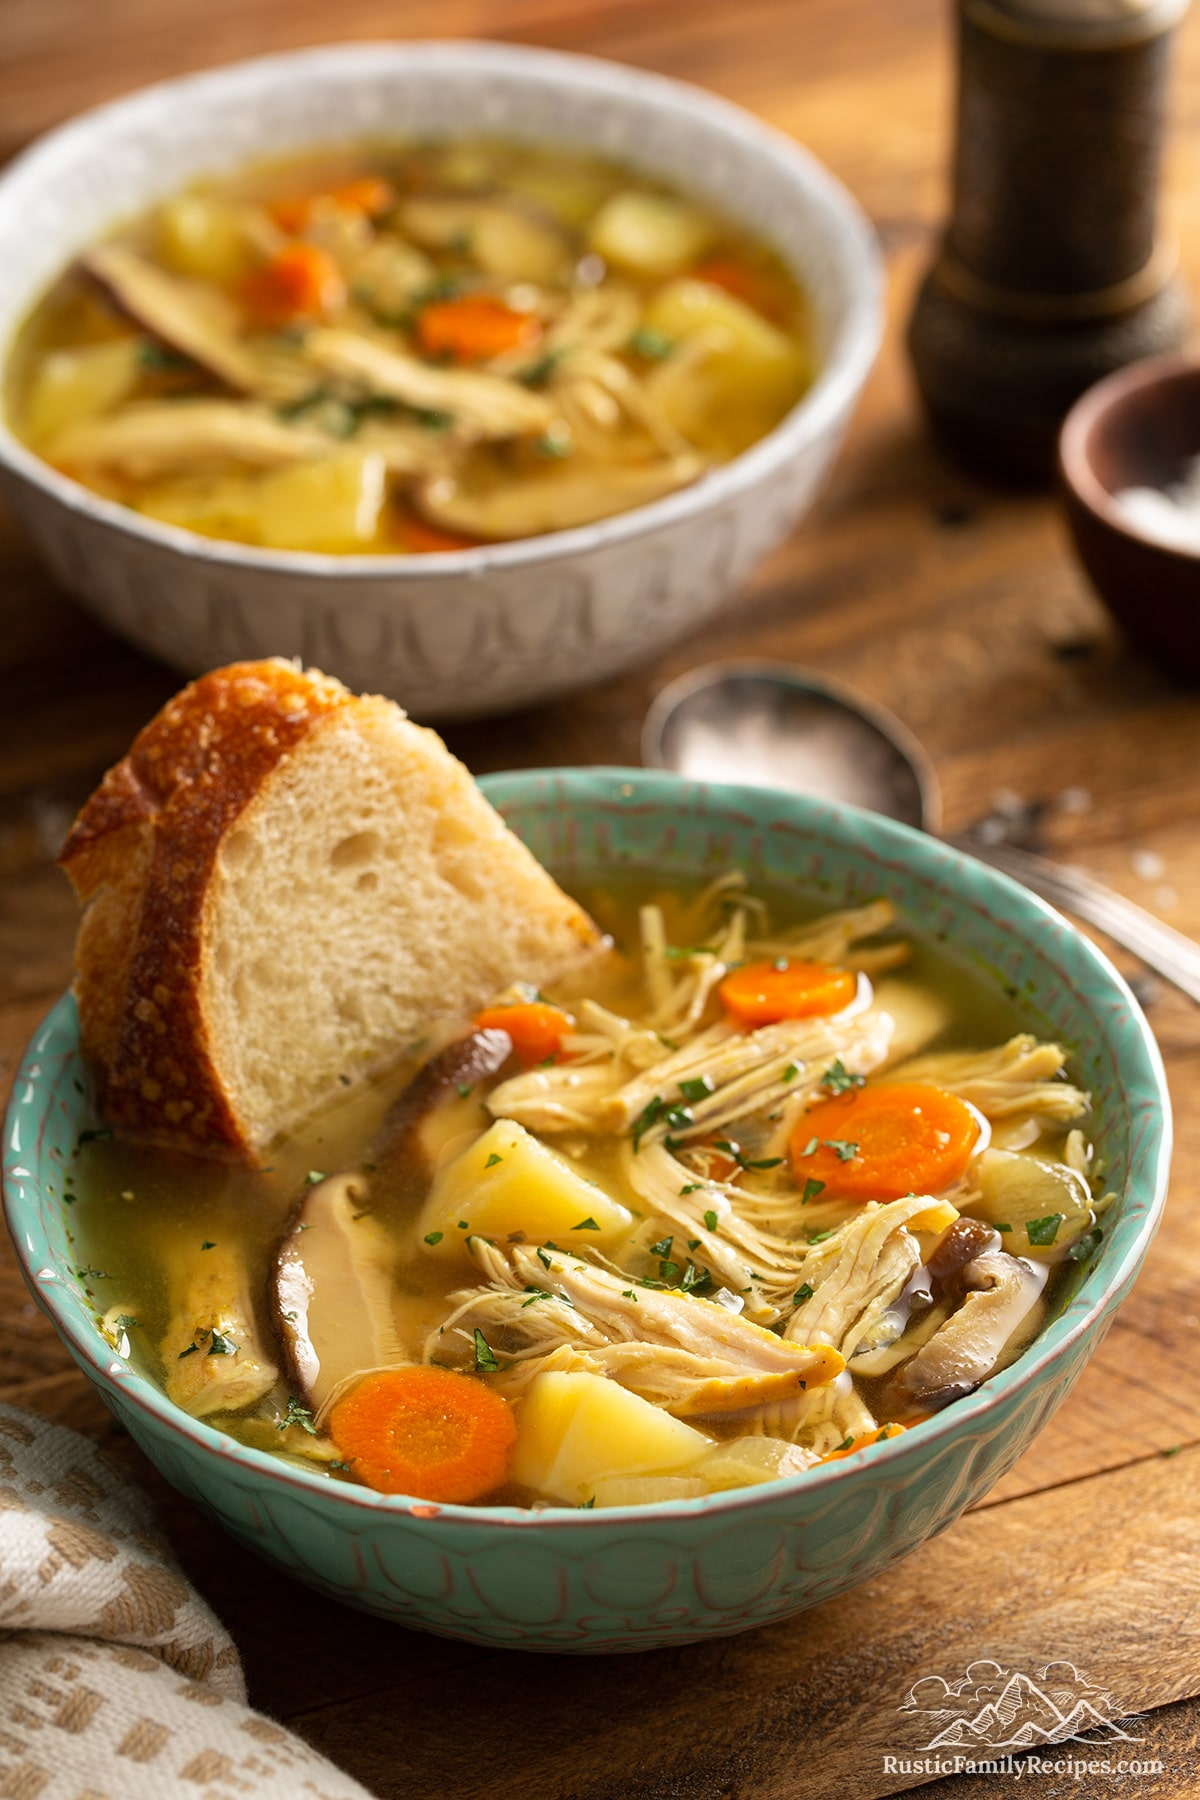 A bowl of IP chicken soup with a crust of bread in the soup.